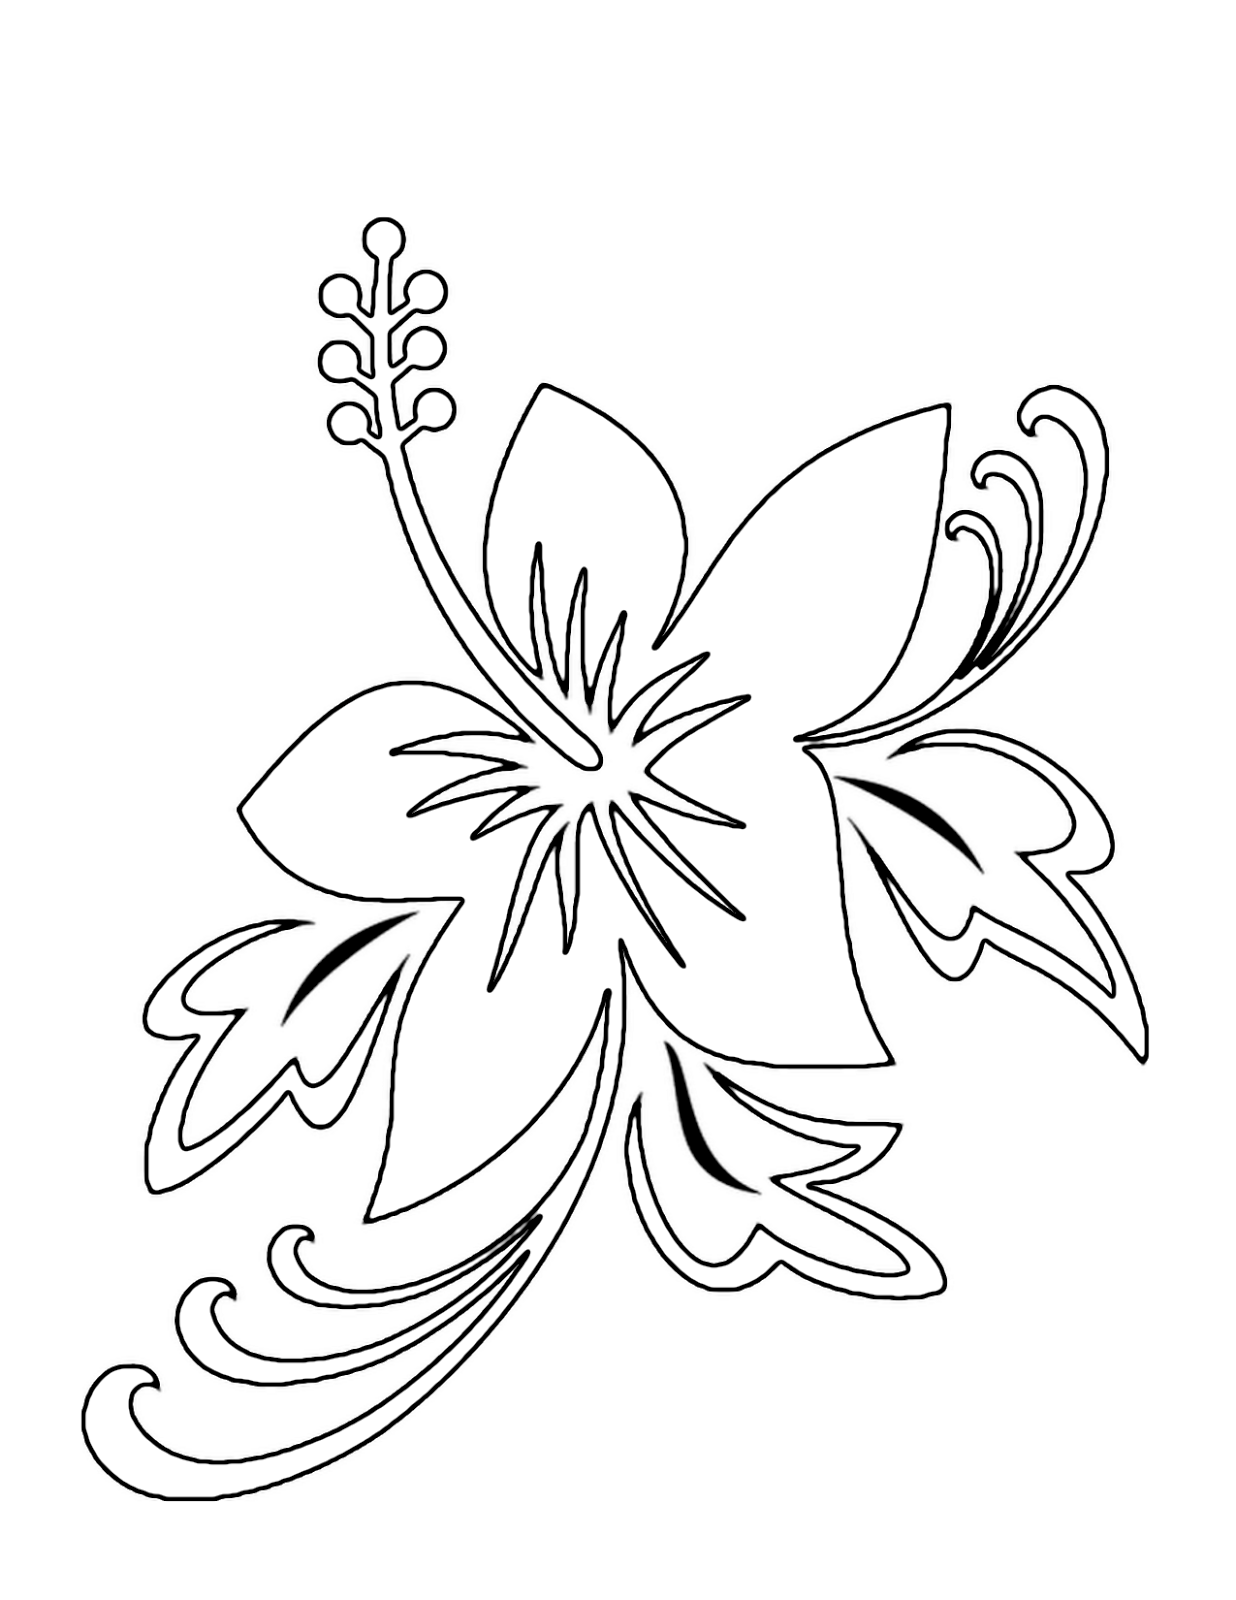 coloring pages of flowers for adults - Free Printable Adult Coloring Pages – Flowers Lena Gott